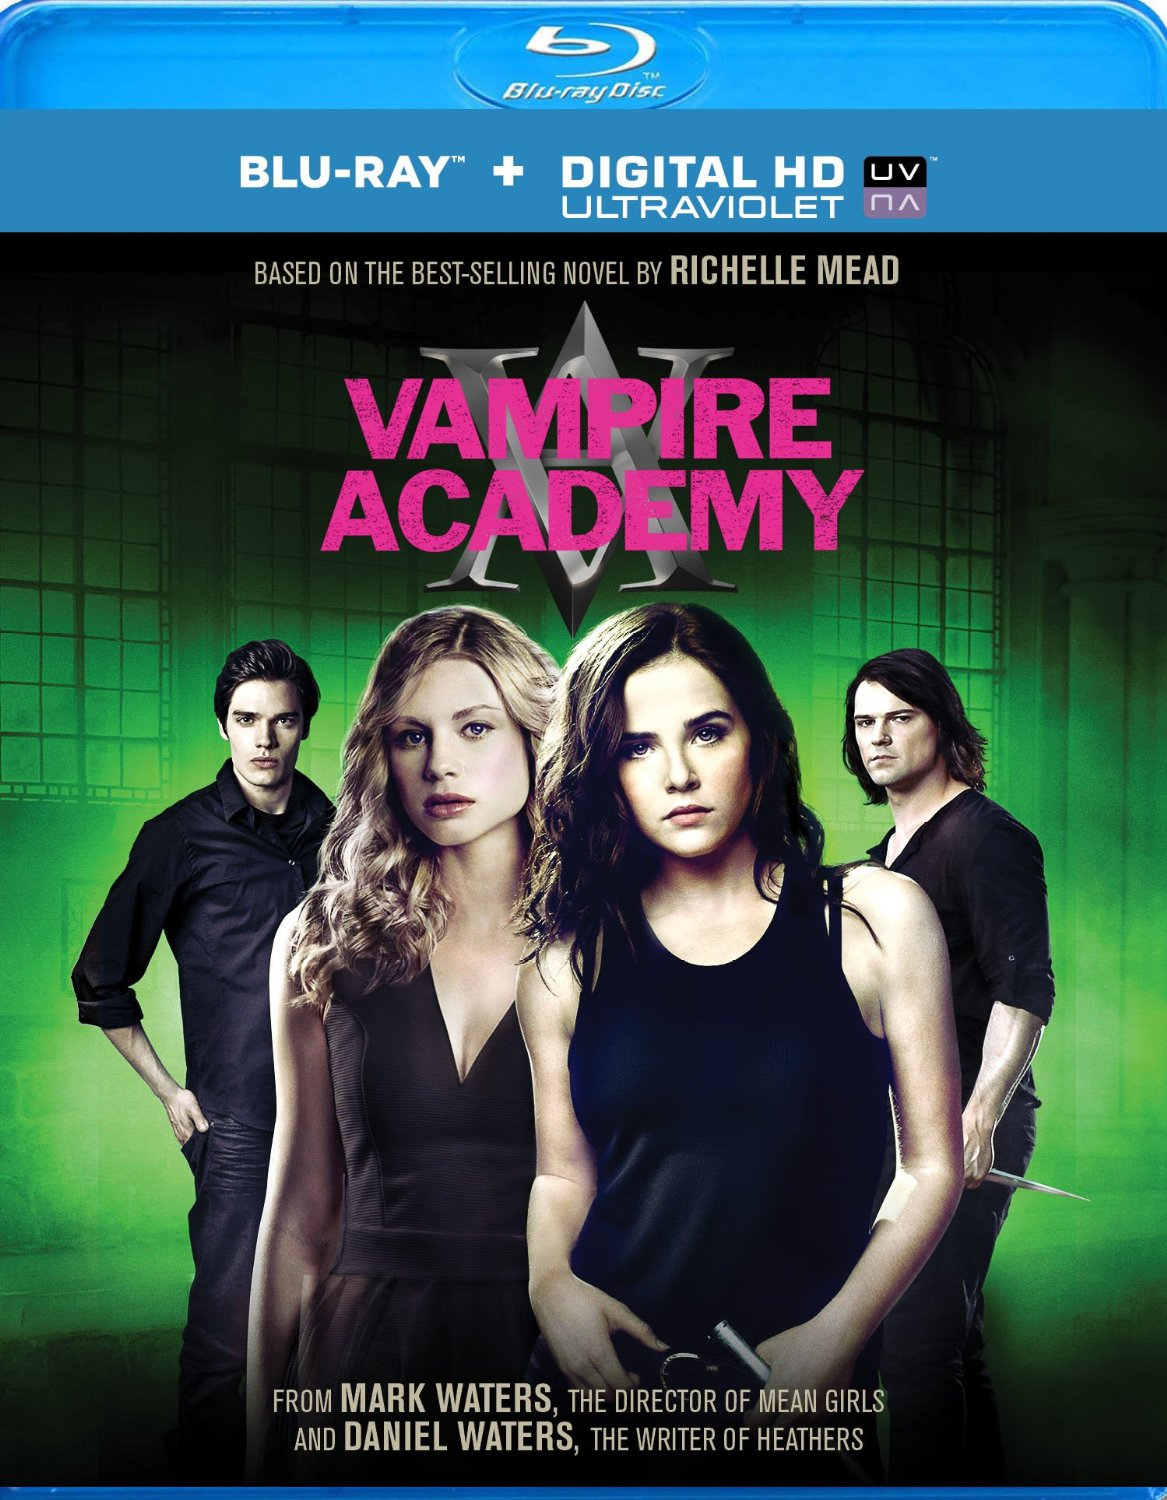 Vampire Academy was be released on Blu-ray and DVD on May 20, 2014